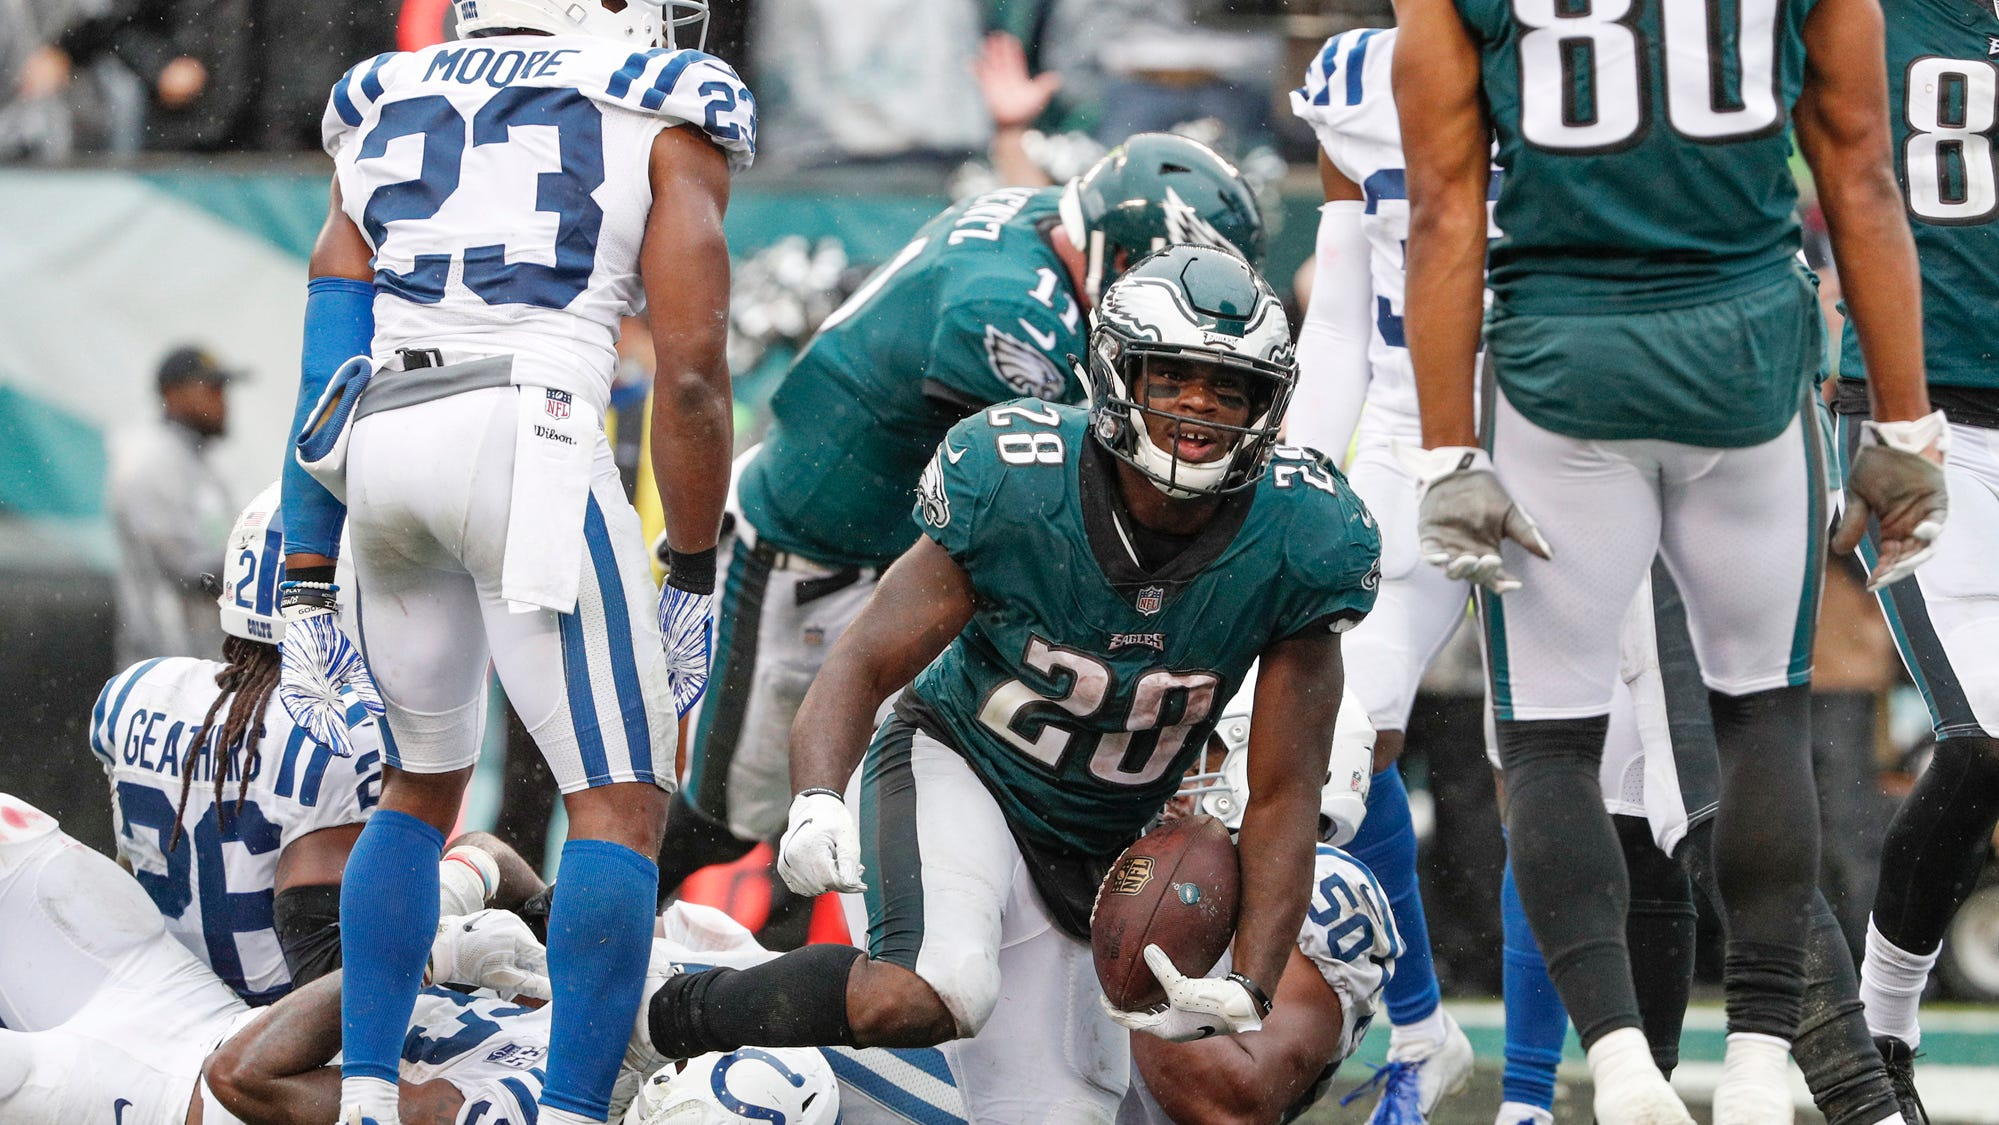 Indianapolis Colts fall to the Philadelphia Eagles, but not in the way you would expect